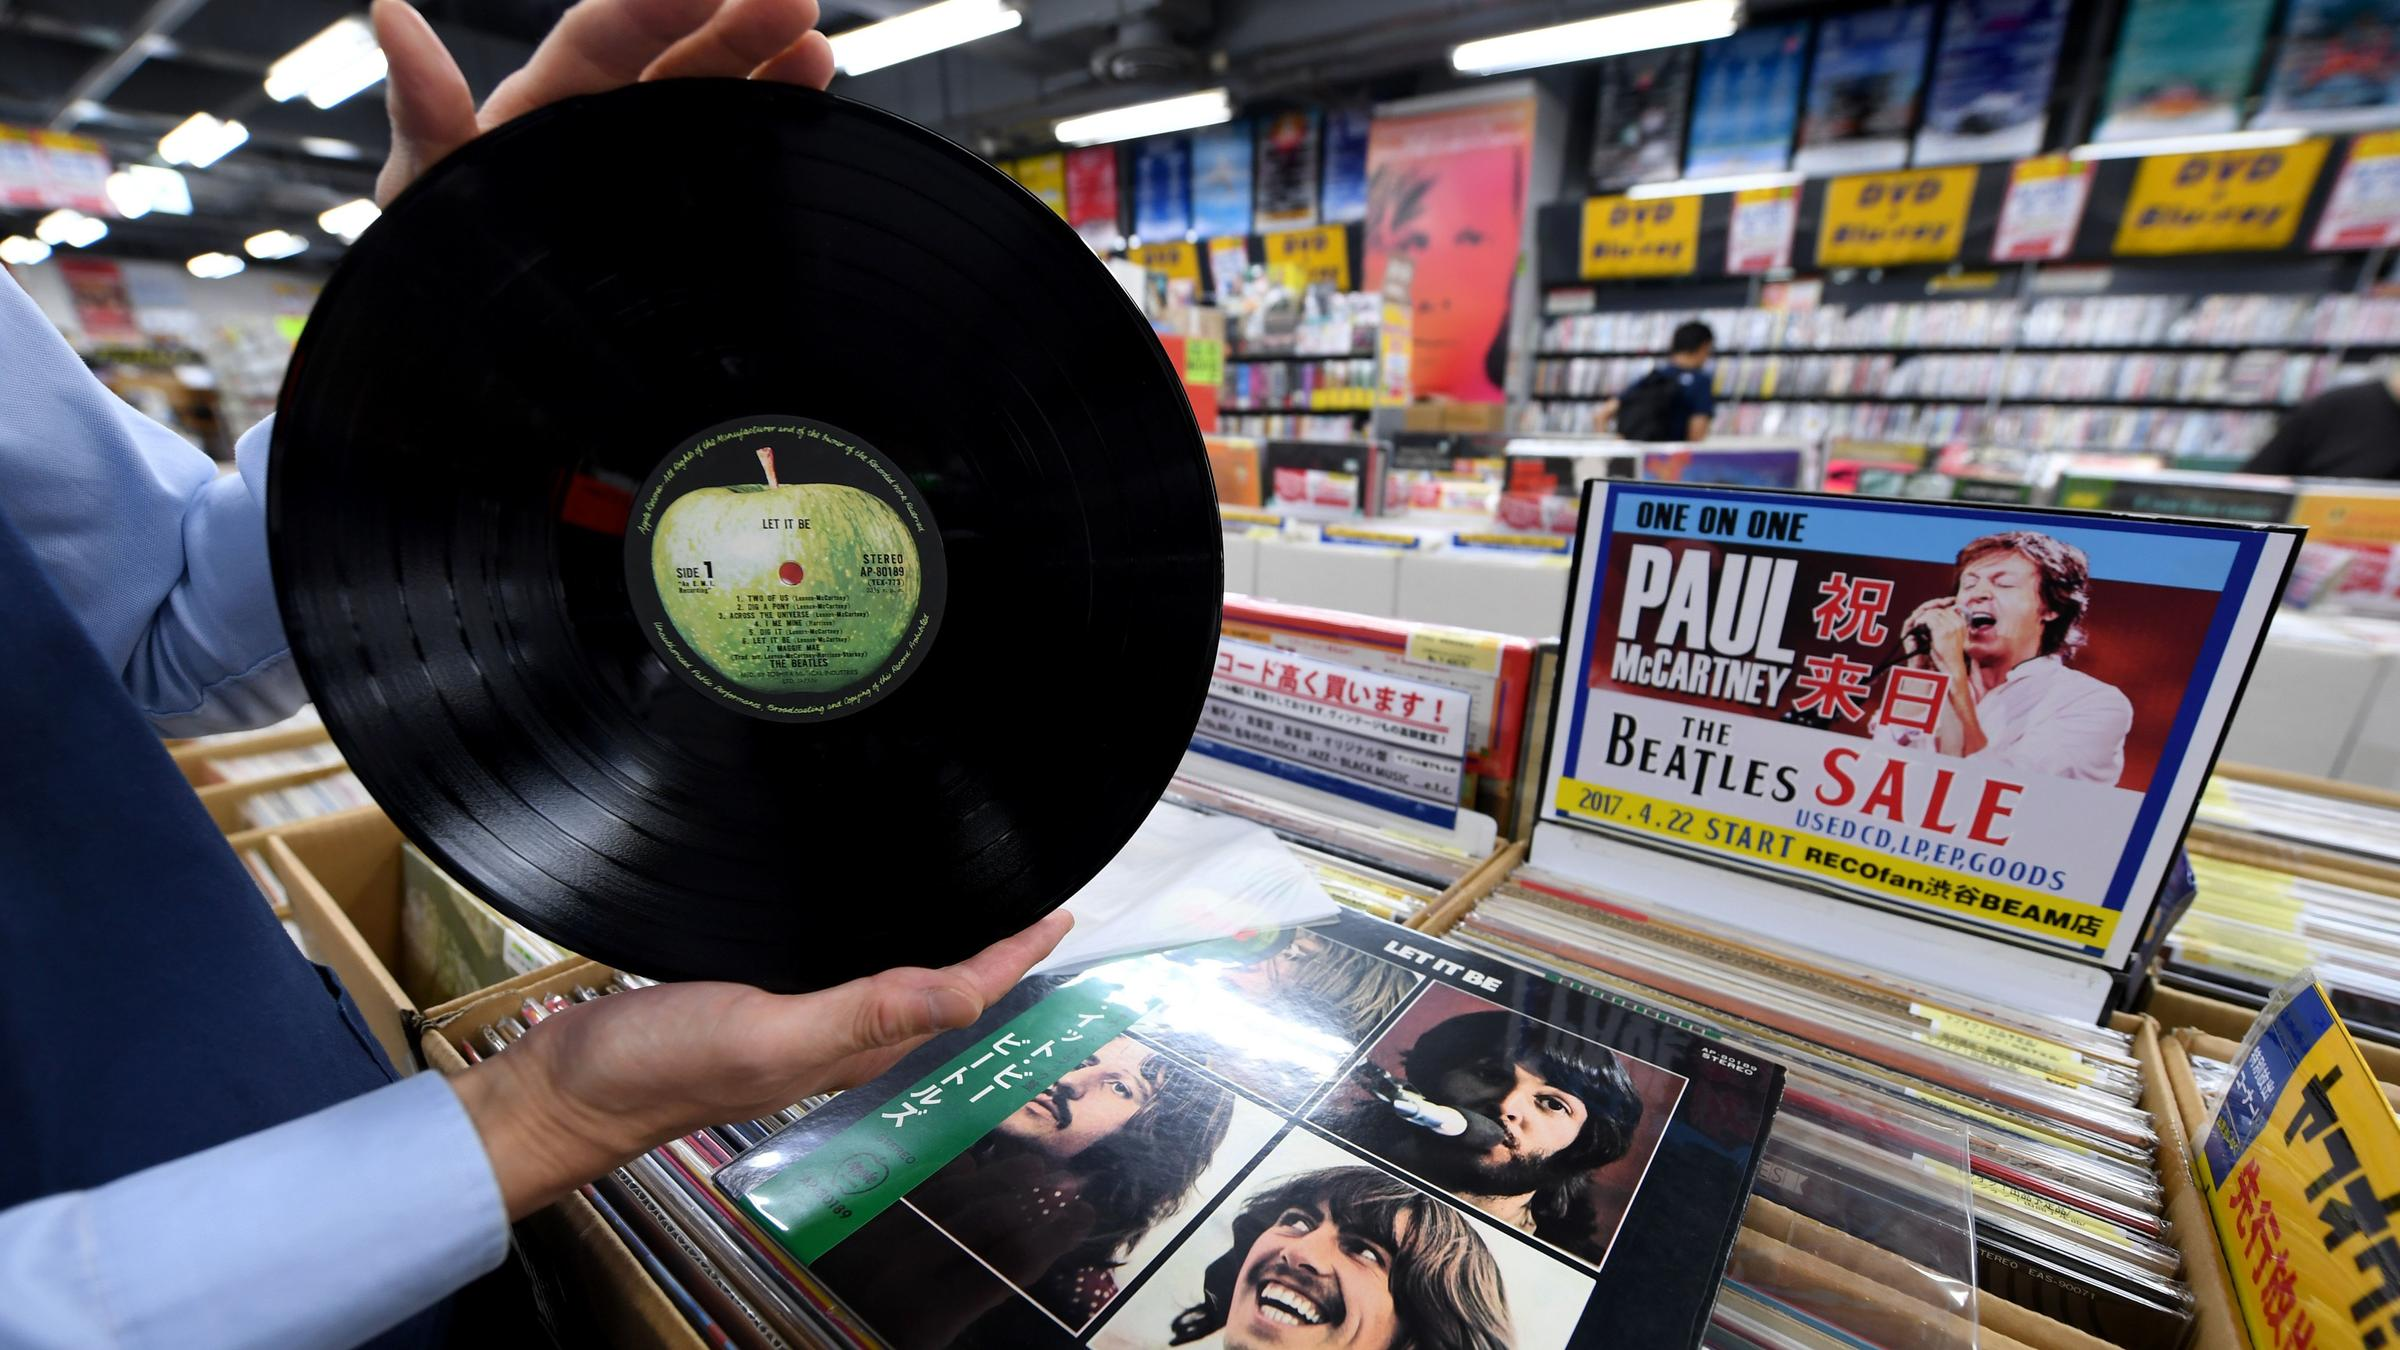 Vinyl comeback: Sony to produce records again after 28-year break